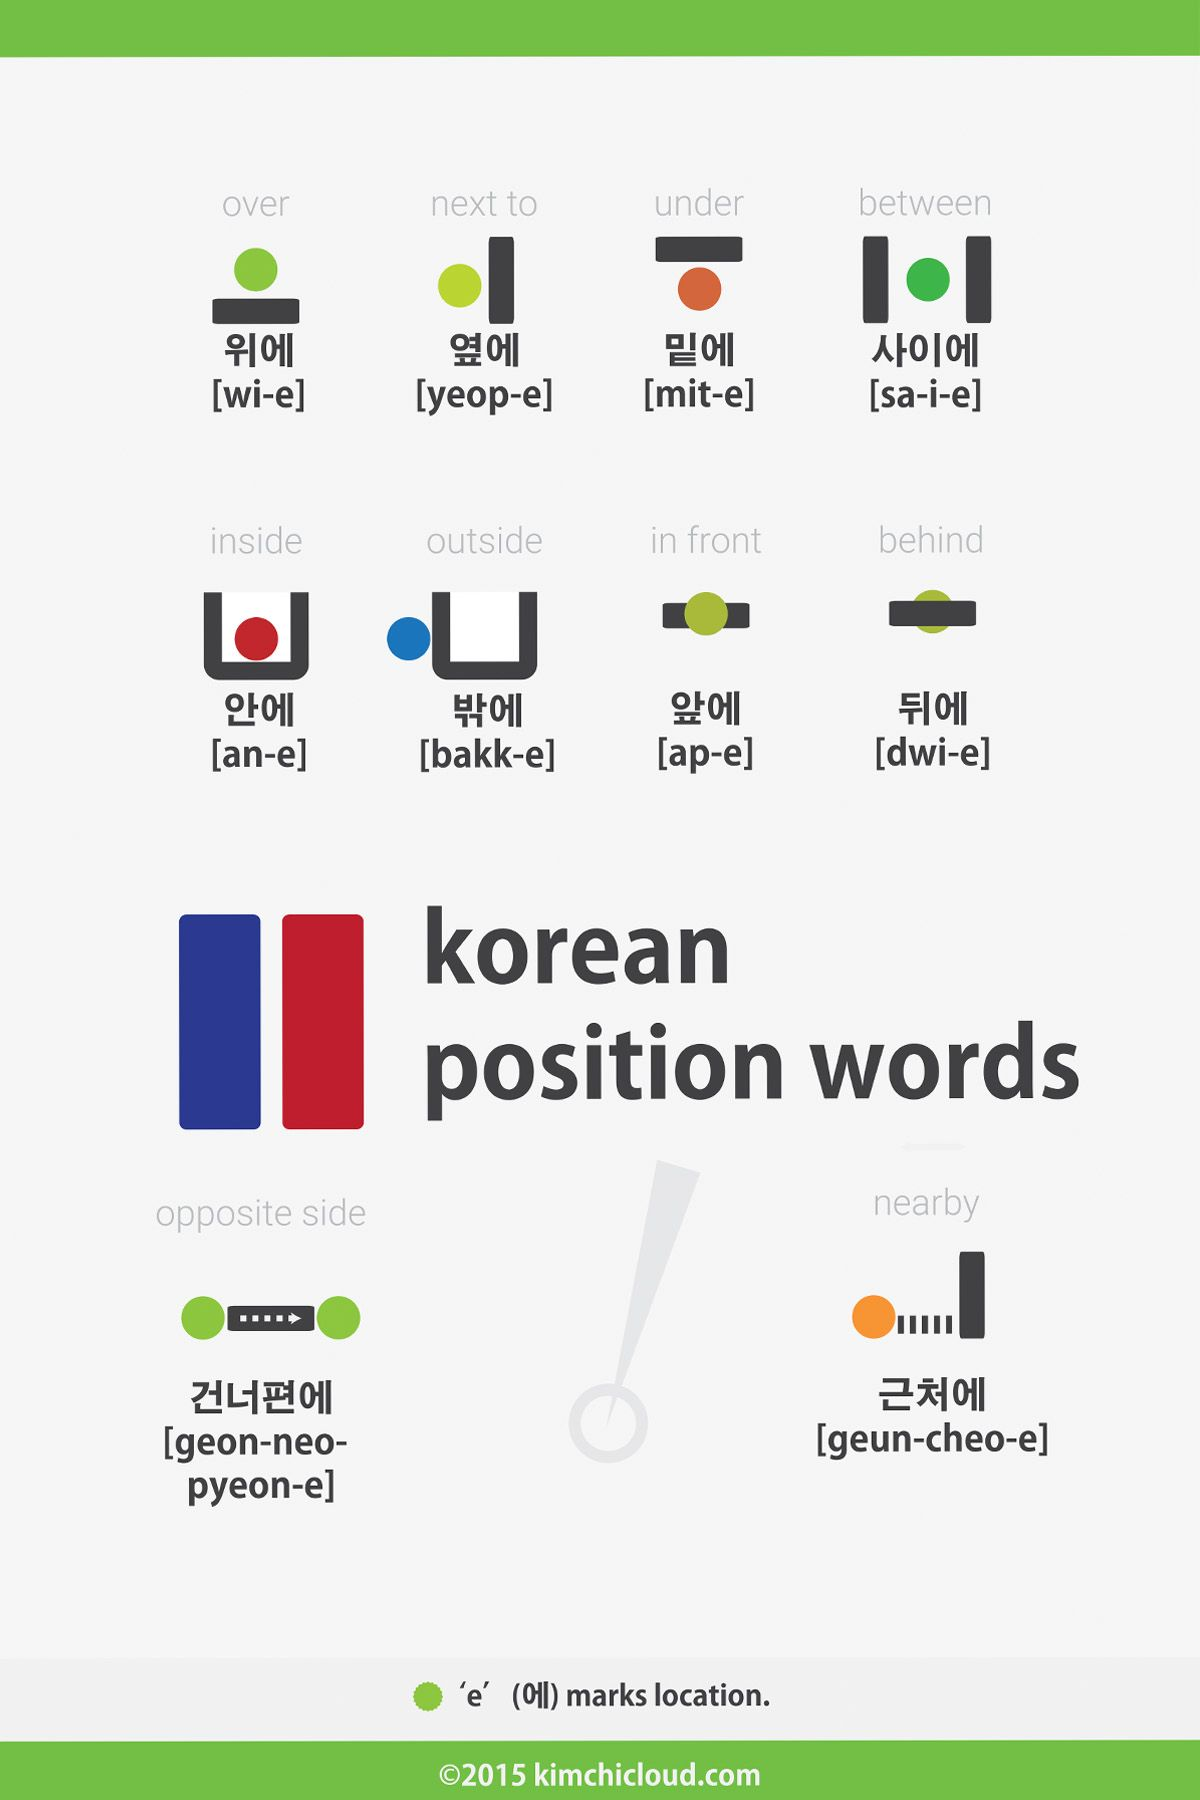 Korean Position Words Prepositions Over